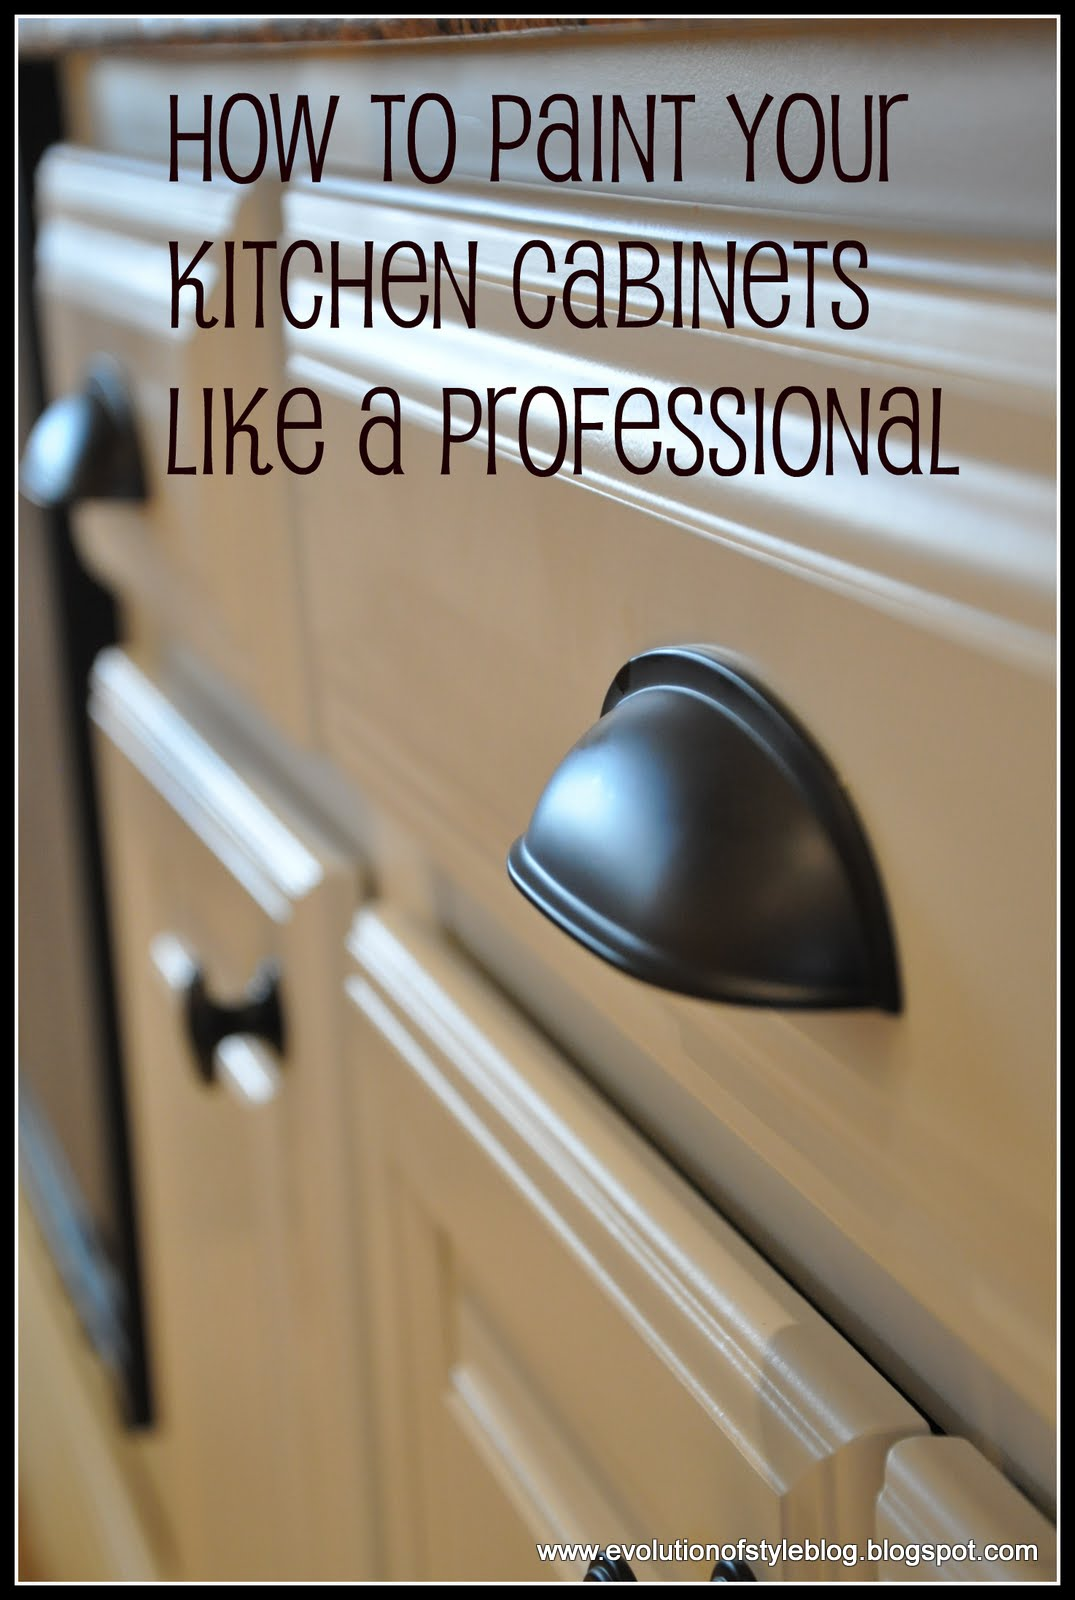 How to Paint Your Kitchen Cabinets Like a Pro